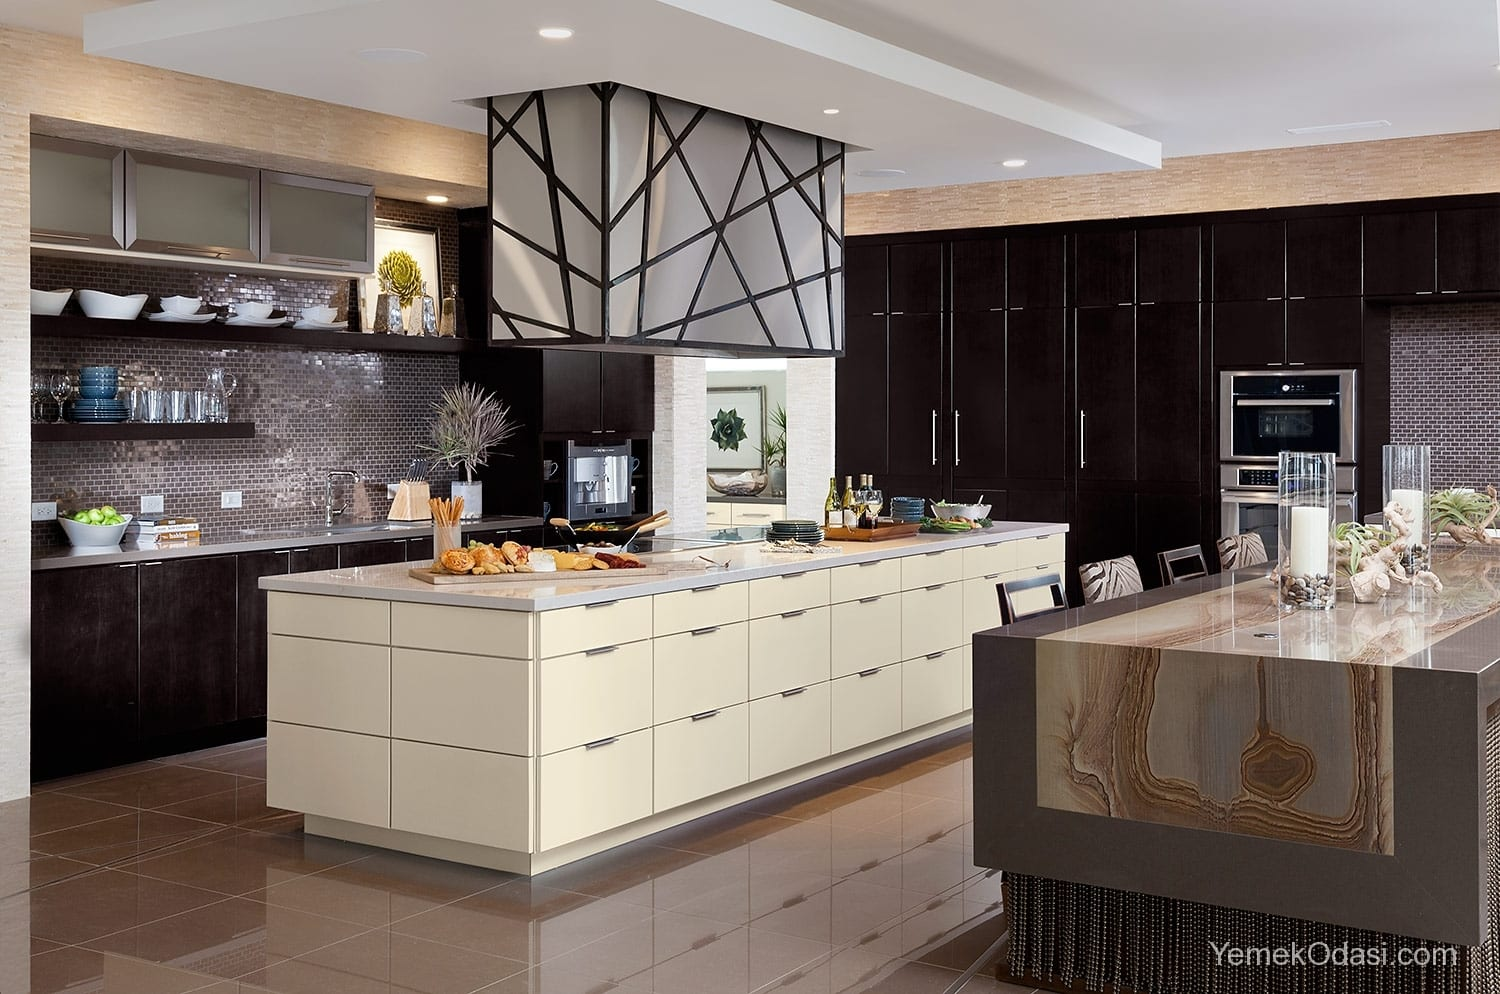 Marvelous american kitchen design together with american kitchen design home bedroom interior - KitchenDecor